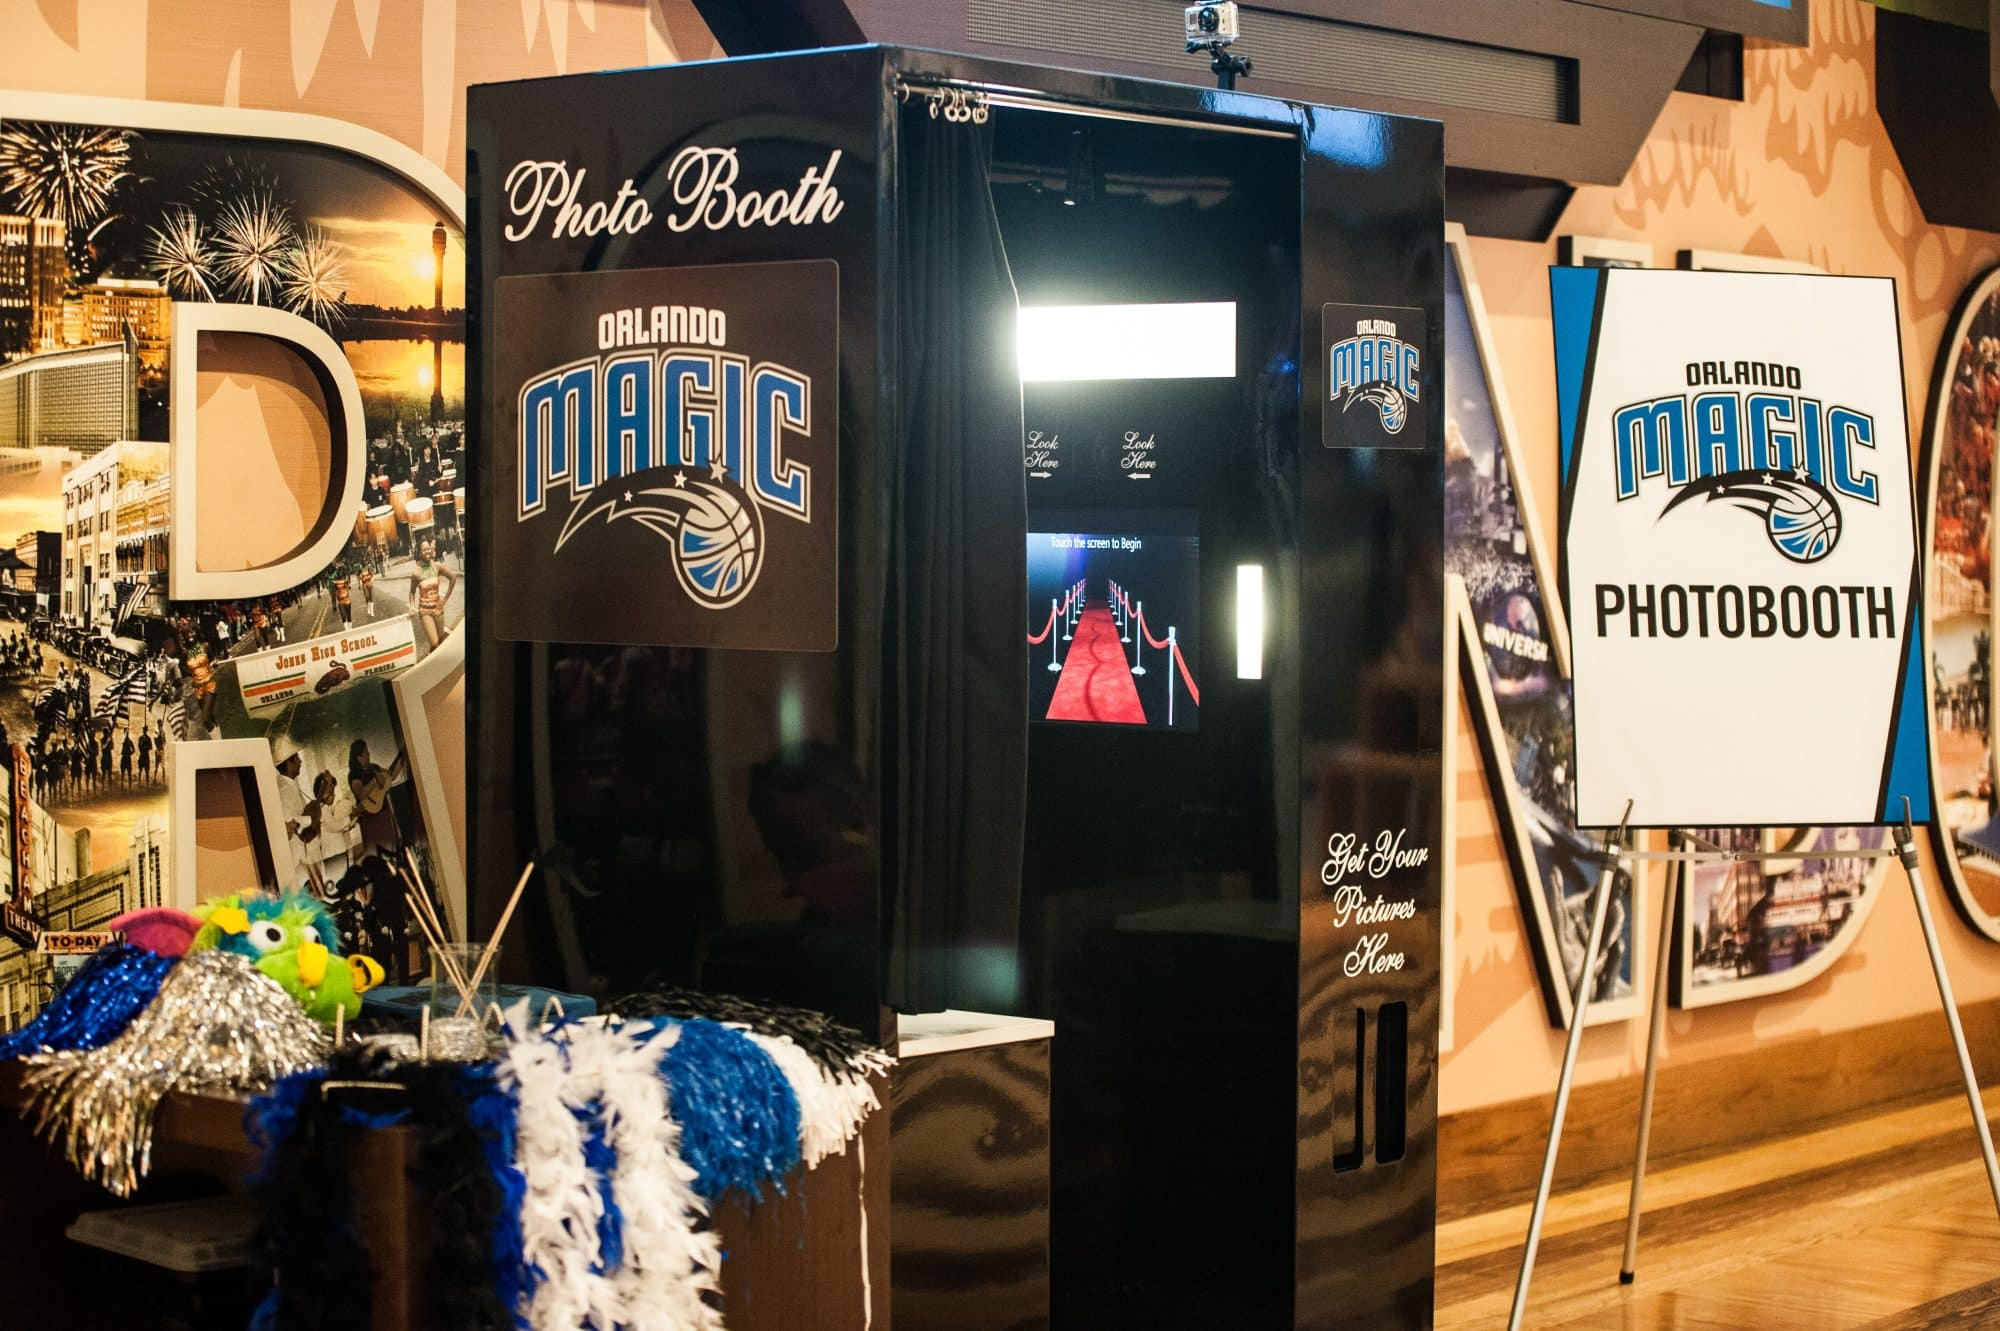 photo booth with Orlando Magic logo